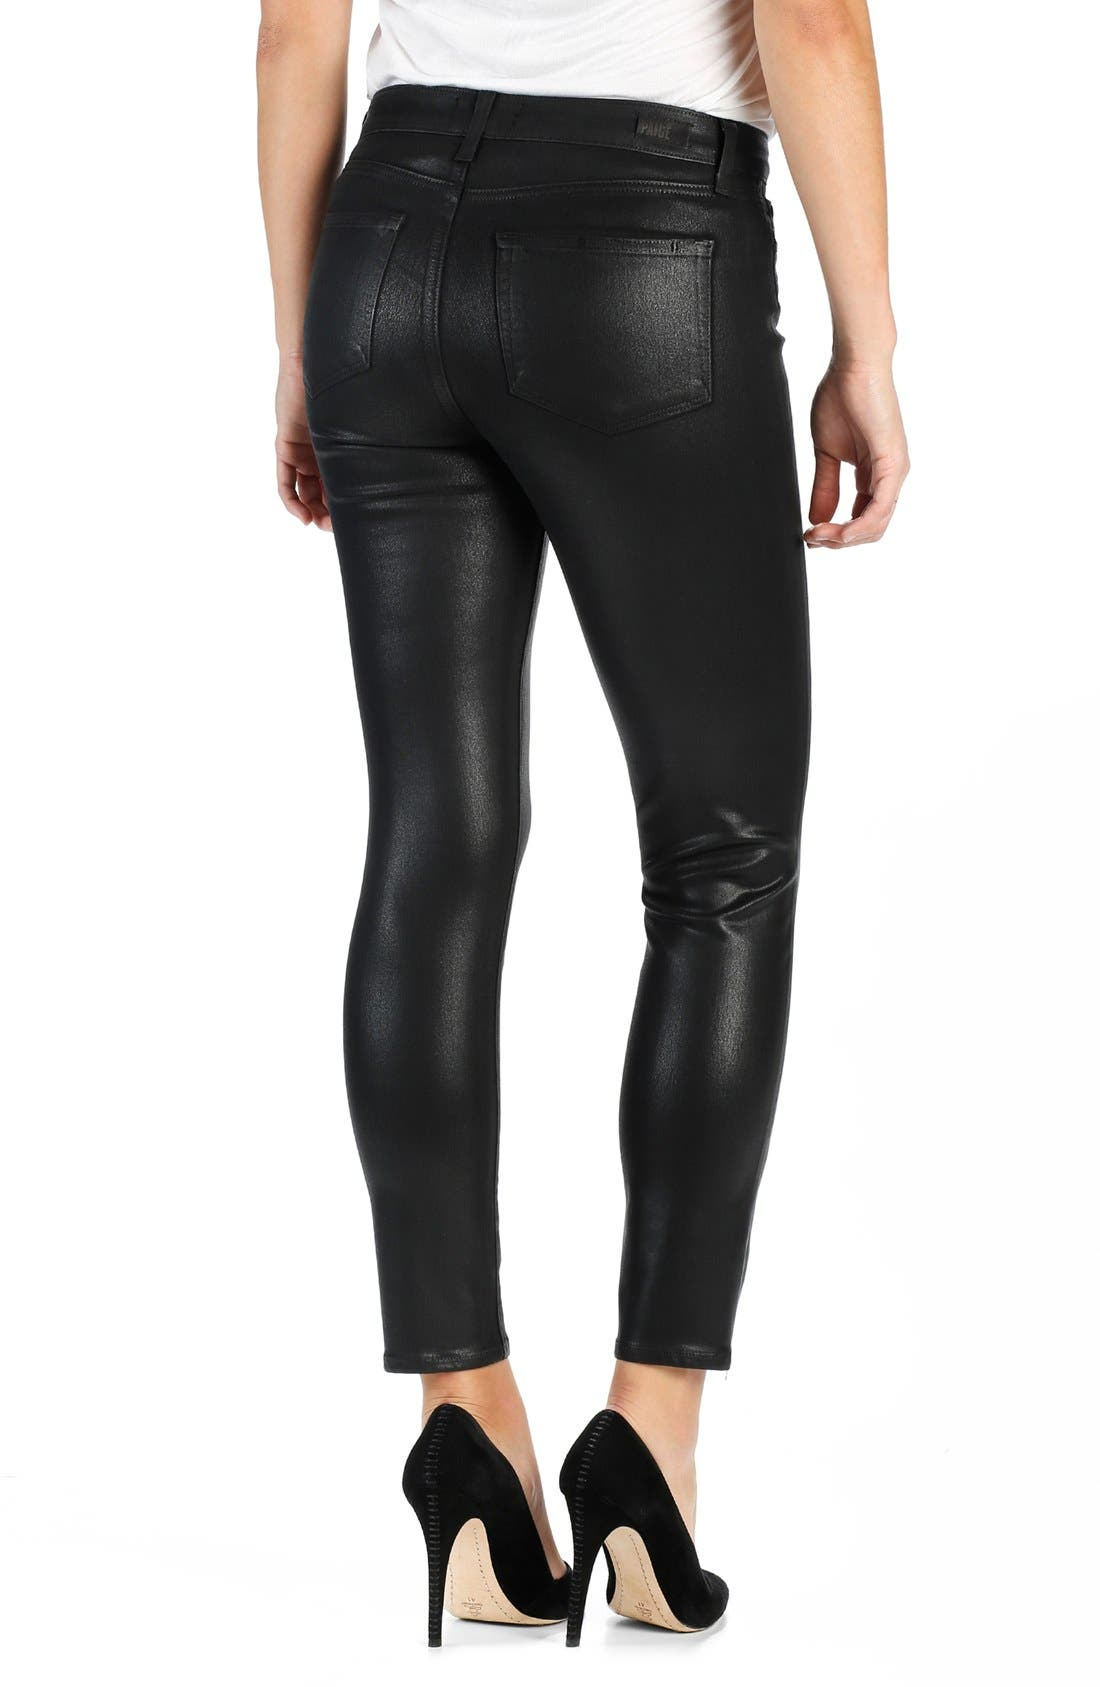 Transcend - Hoxton High Waist Ankle Skinny Jeans,                             Alternate thumbnail 8, color,                             LUXE BLACK COATED